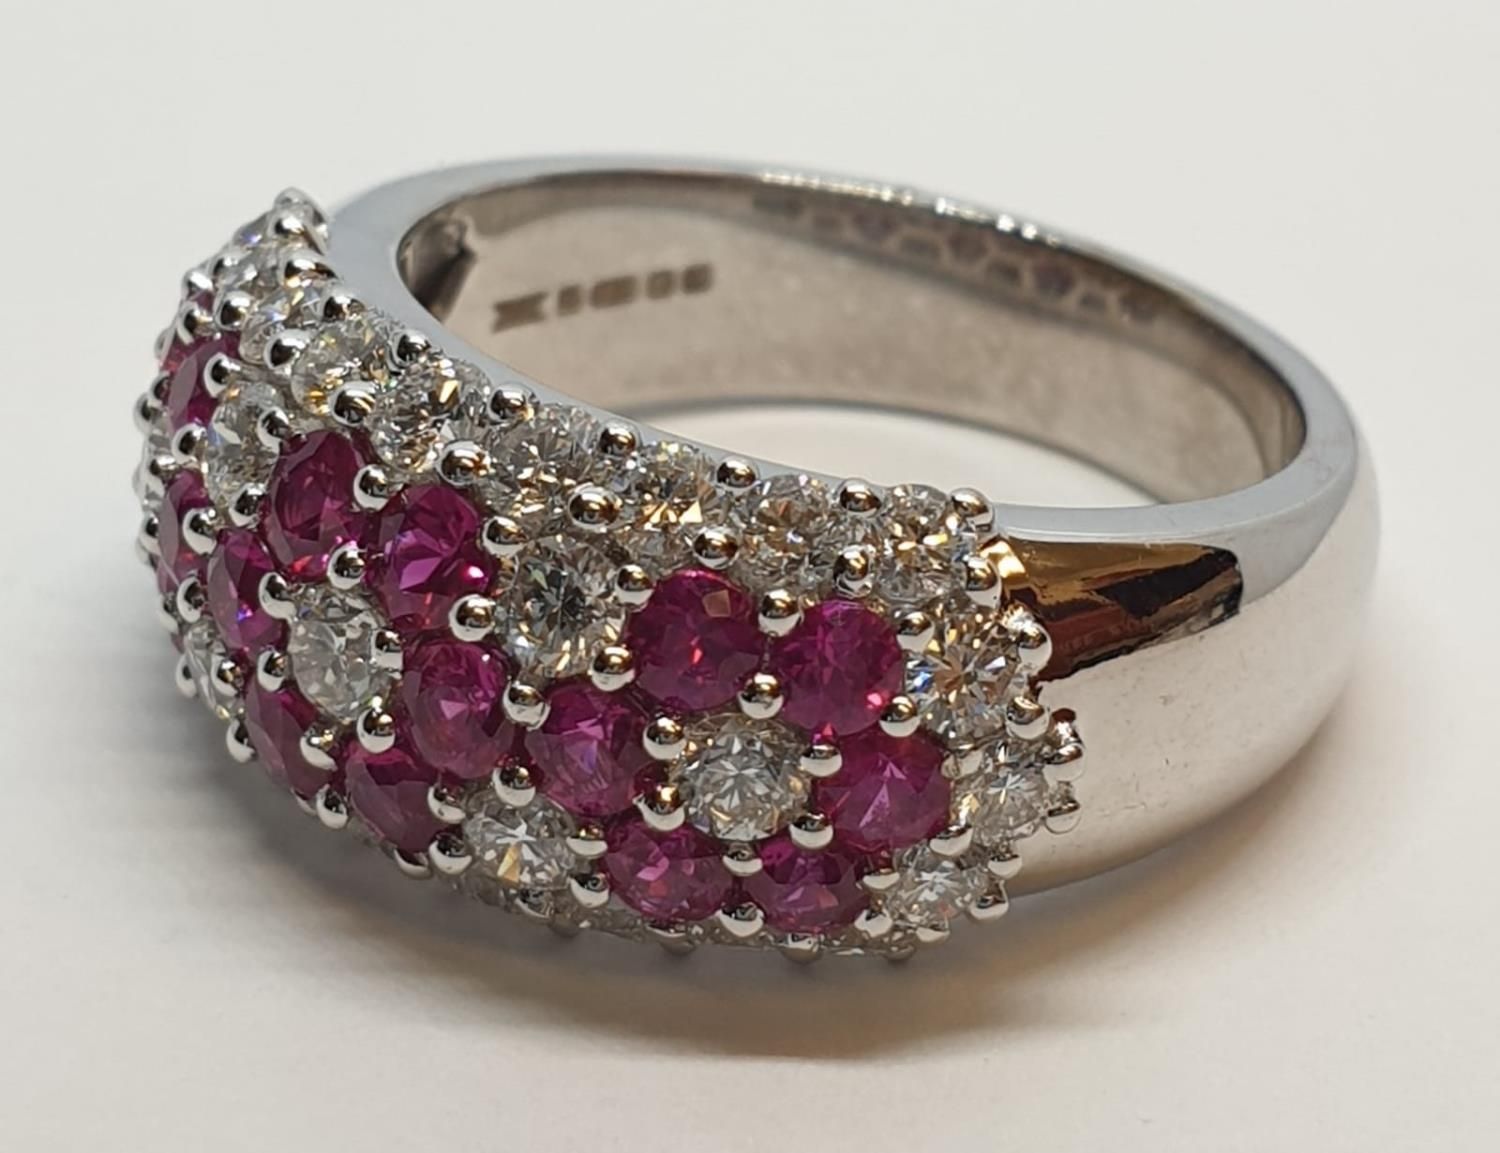 18ct white gold ring with over 1ct ruby and 1.8ct diamonds in flower design, weight 9.39g and size M - Image 3 of 11